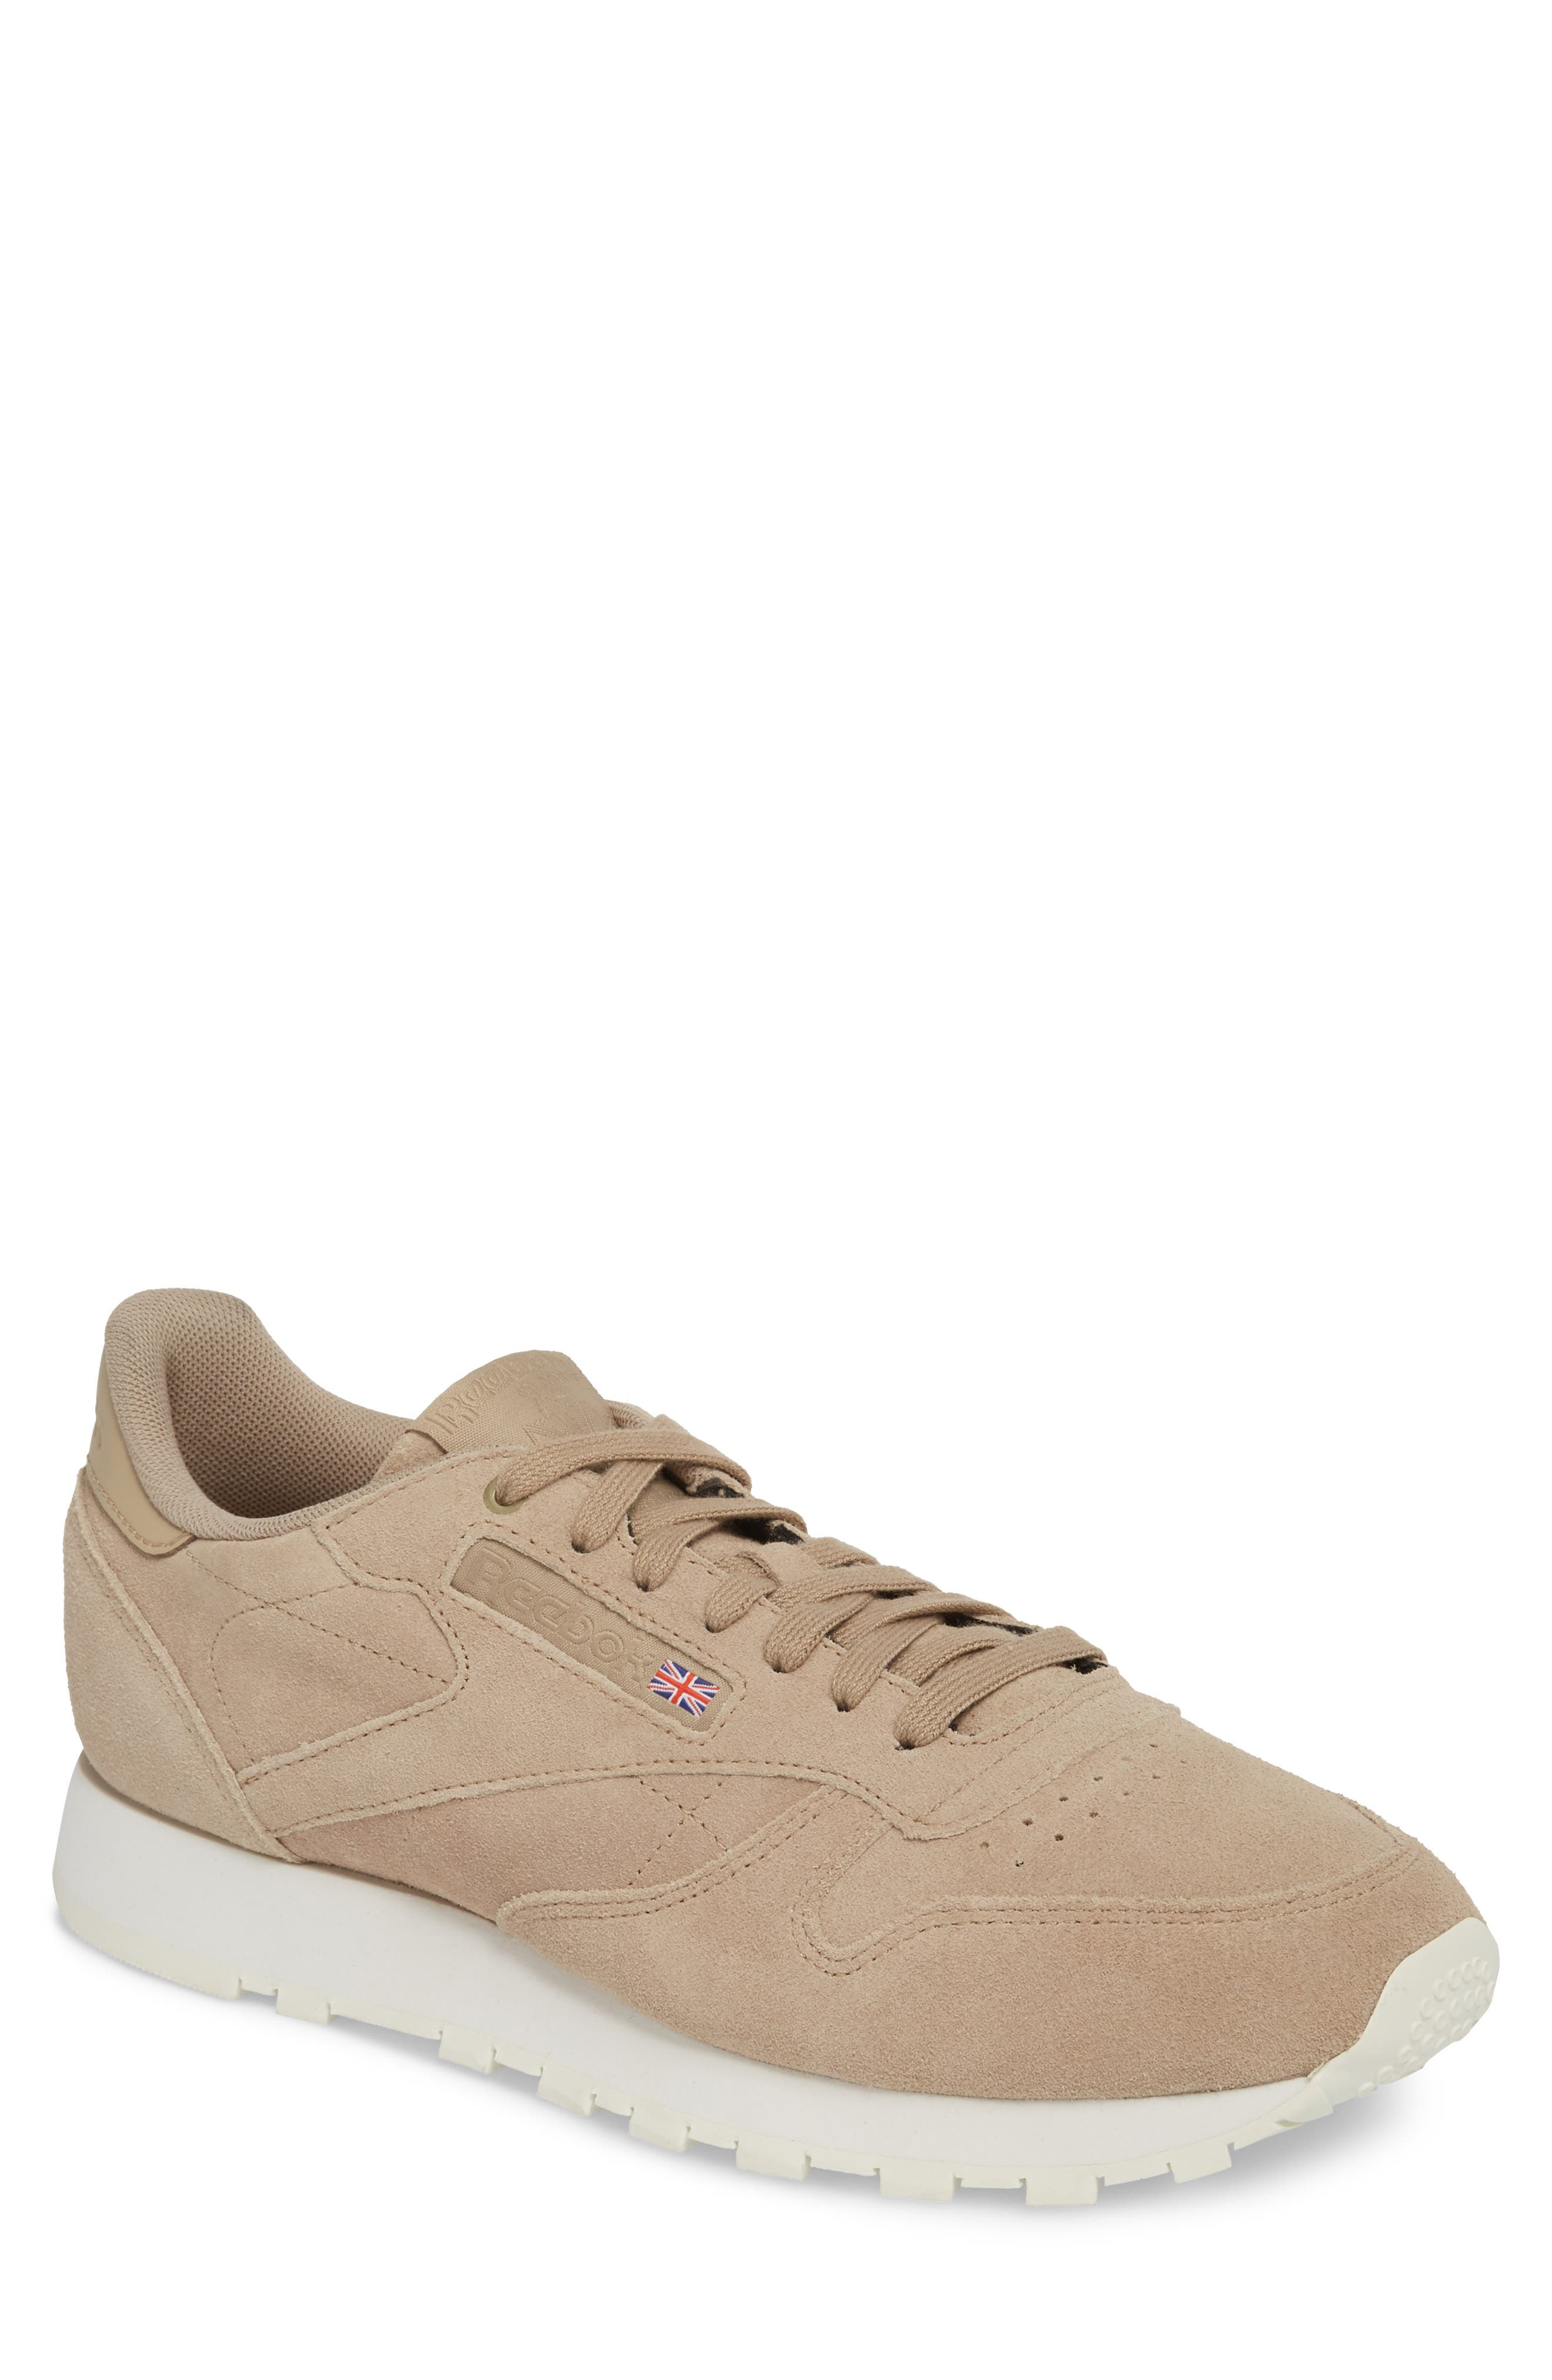 Classic Leather Low Top Sneaker,                         Main,                         color, Duck Season/ Chalk